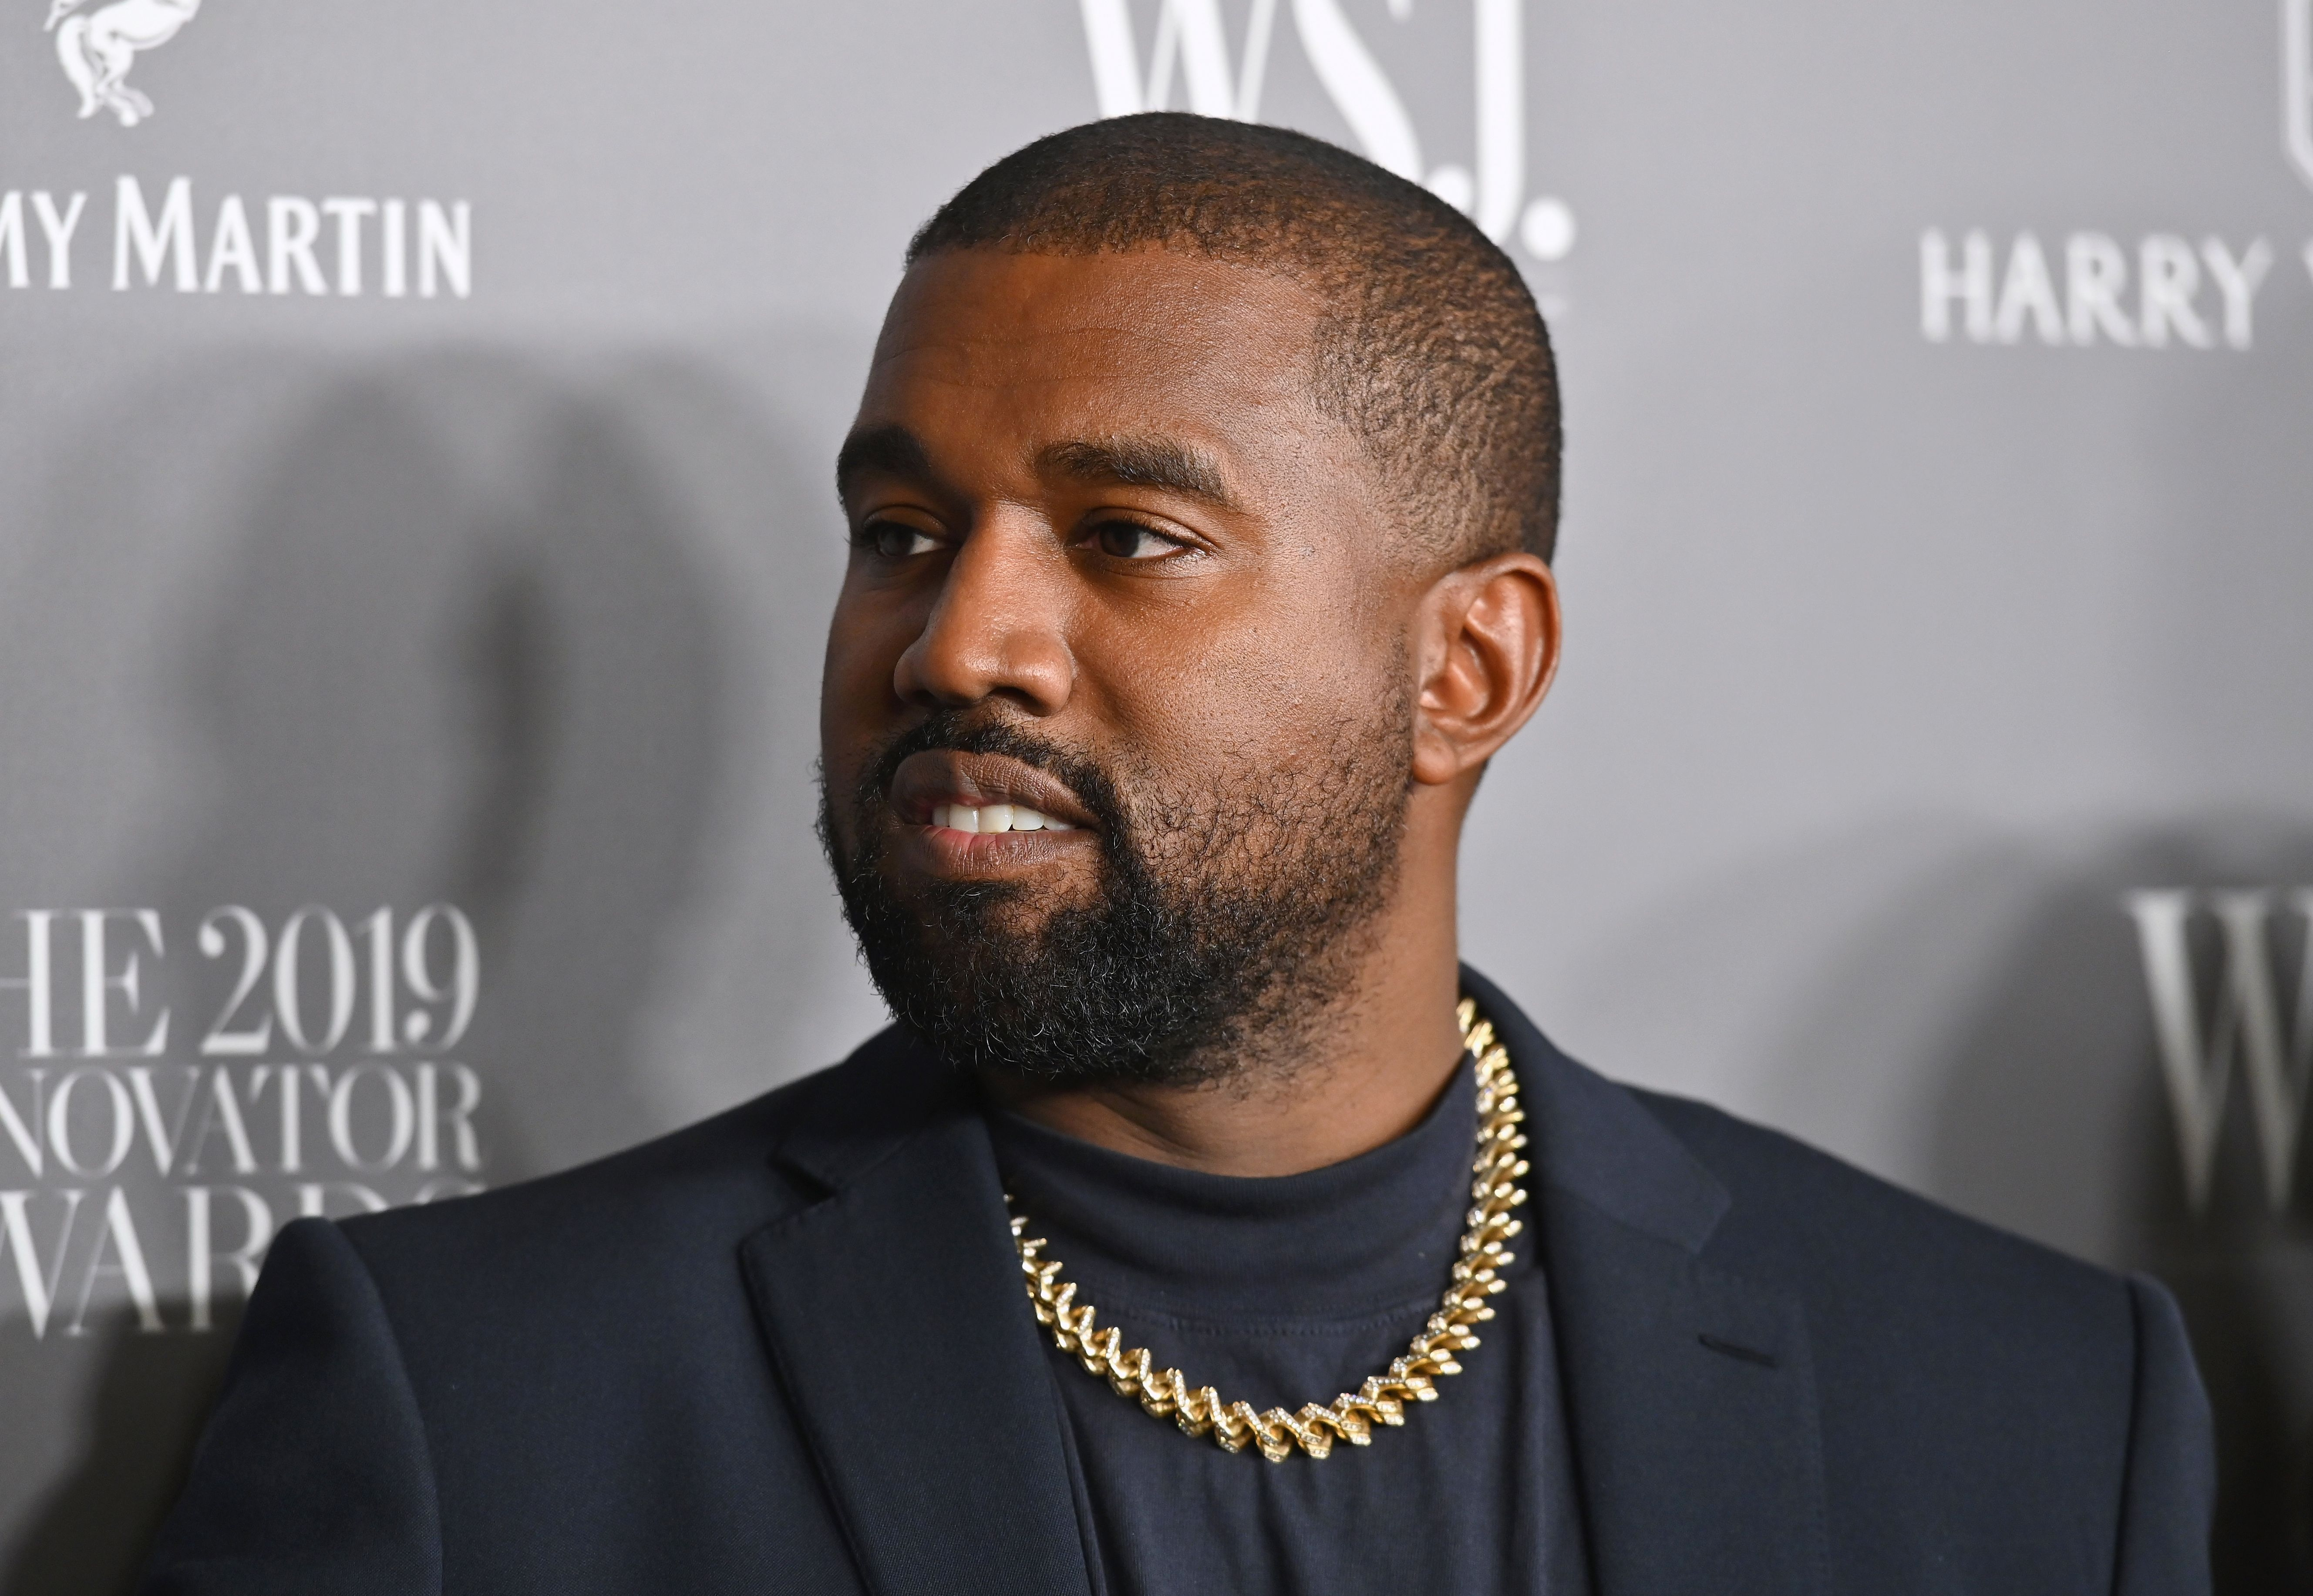 Kanye West on the red carpet